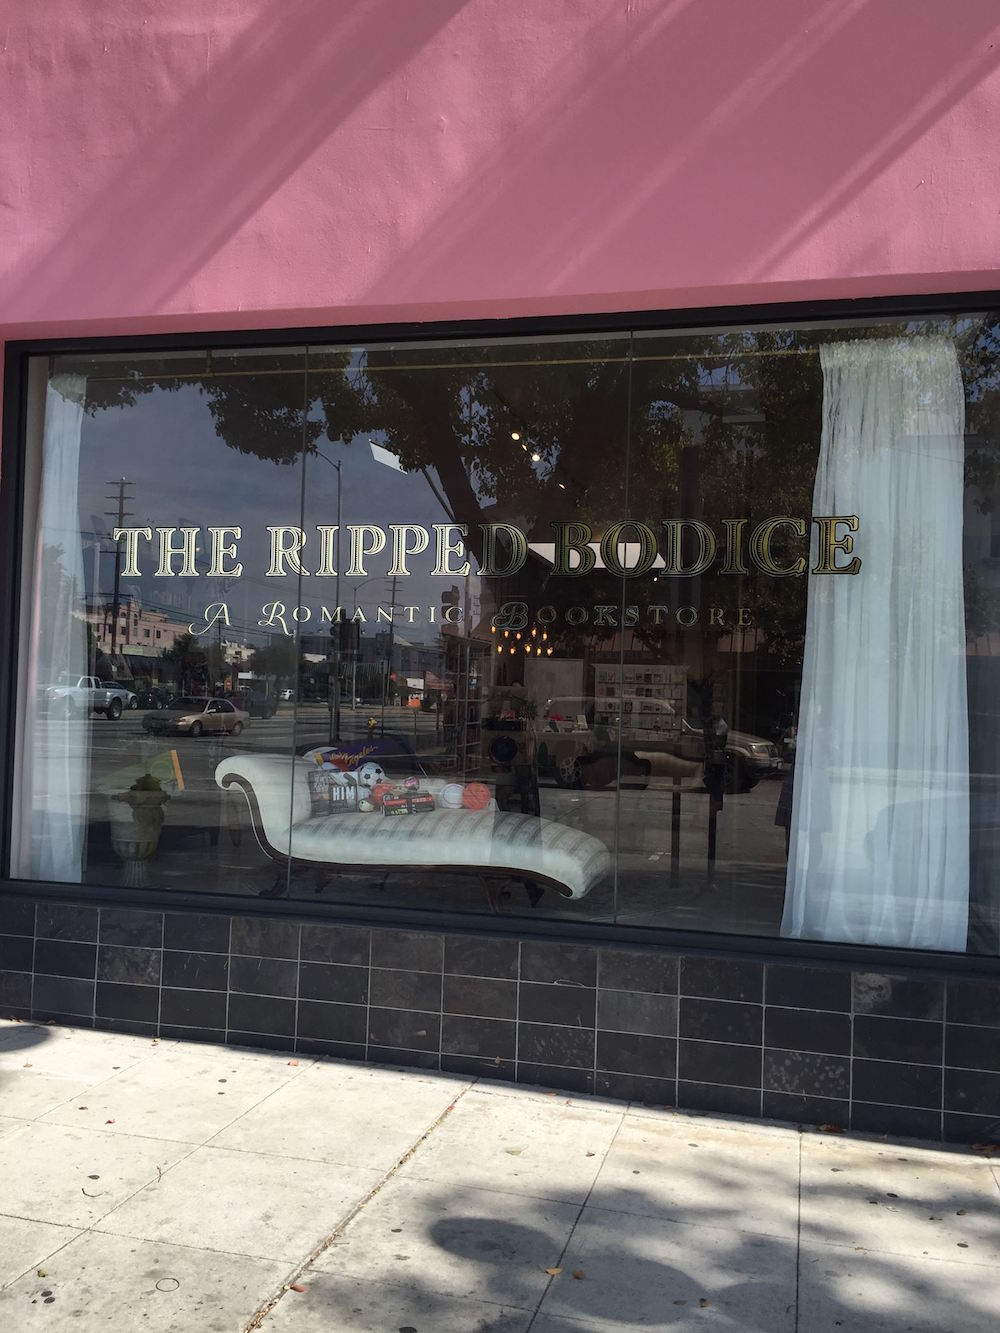 The Ripped Bodice - a romance novel store at 3806 Main Street, Culver City, CA